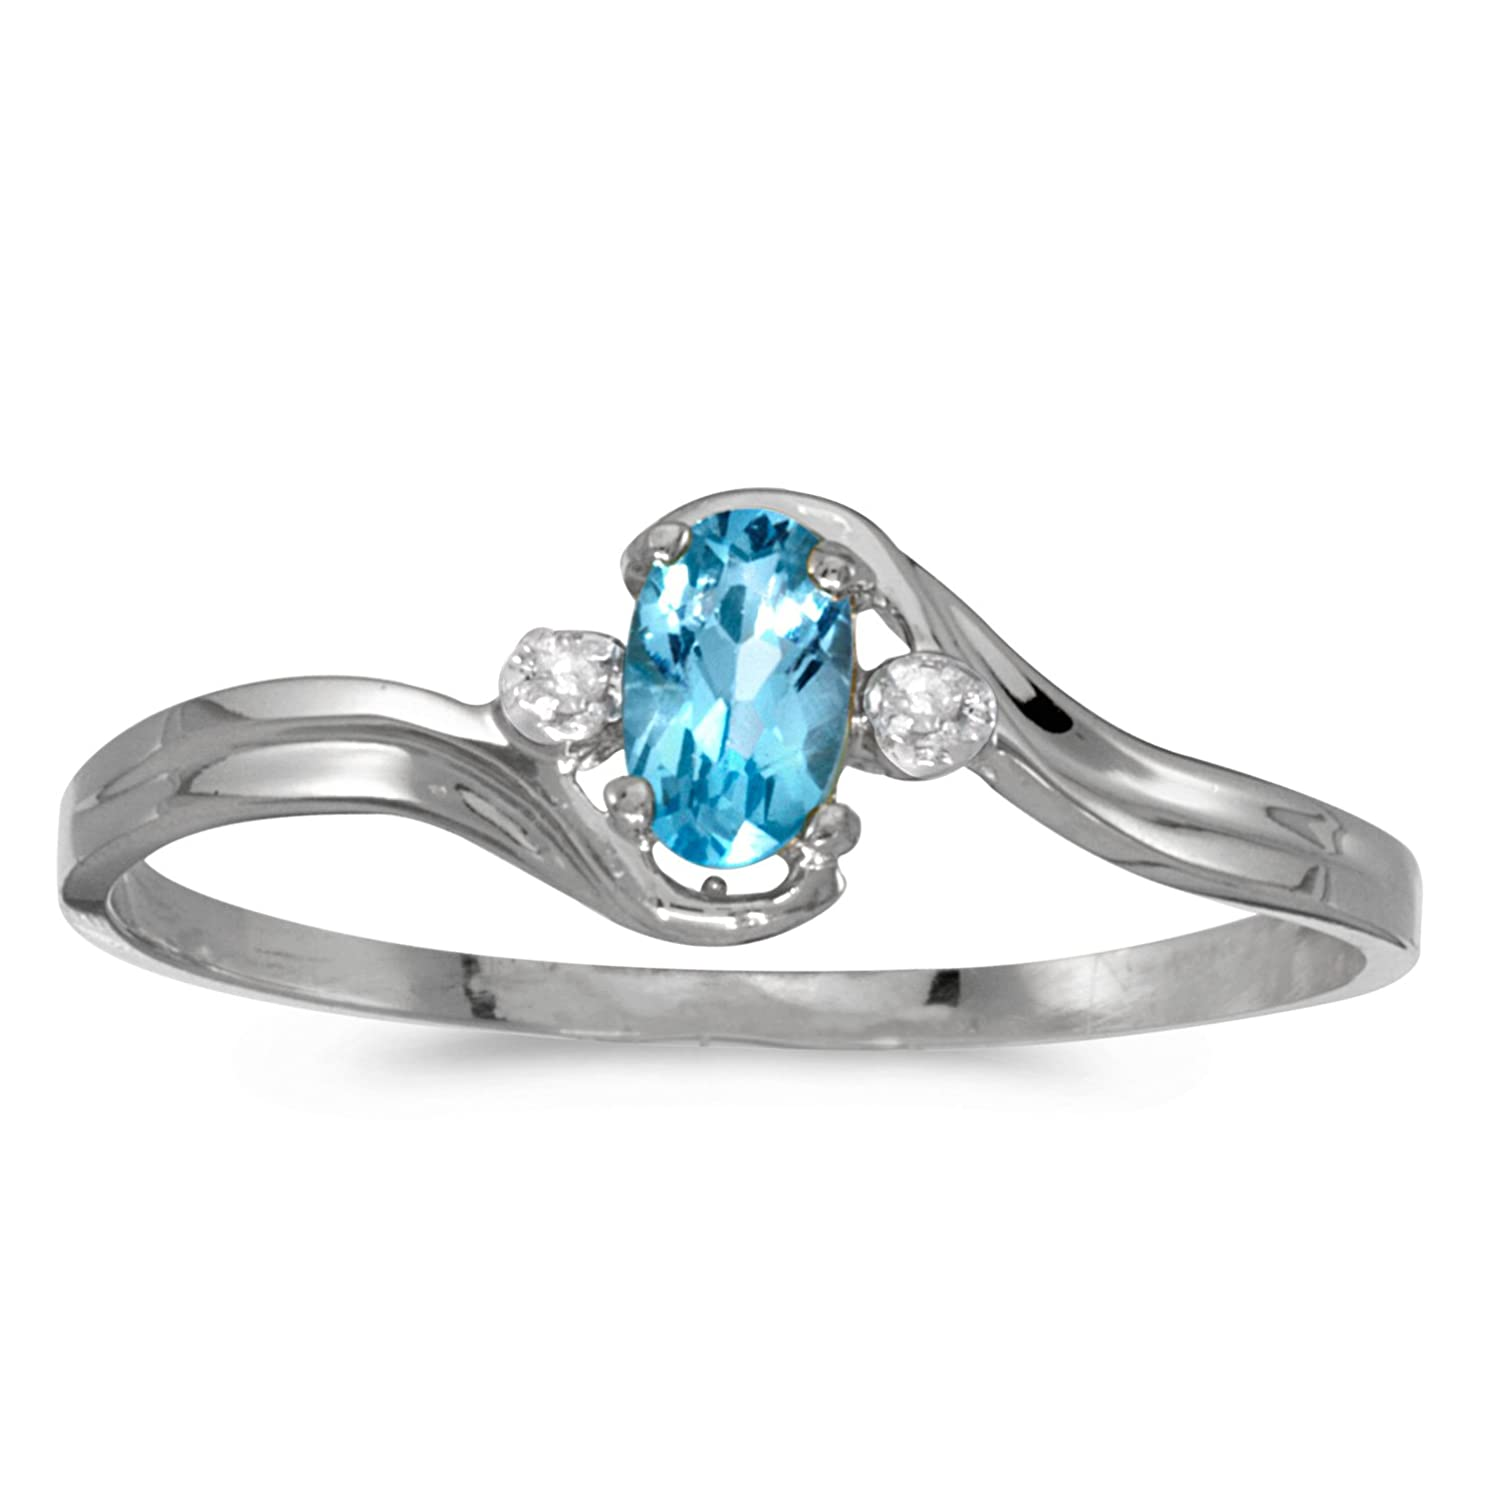 wedding products silver bezel ring with rings trillion thegoldsmith blue birthstone december set sterling dots